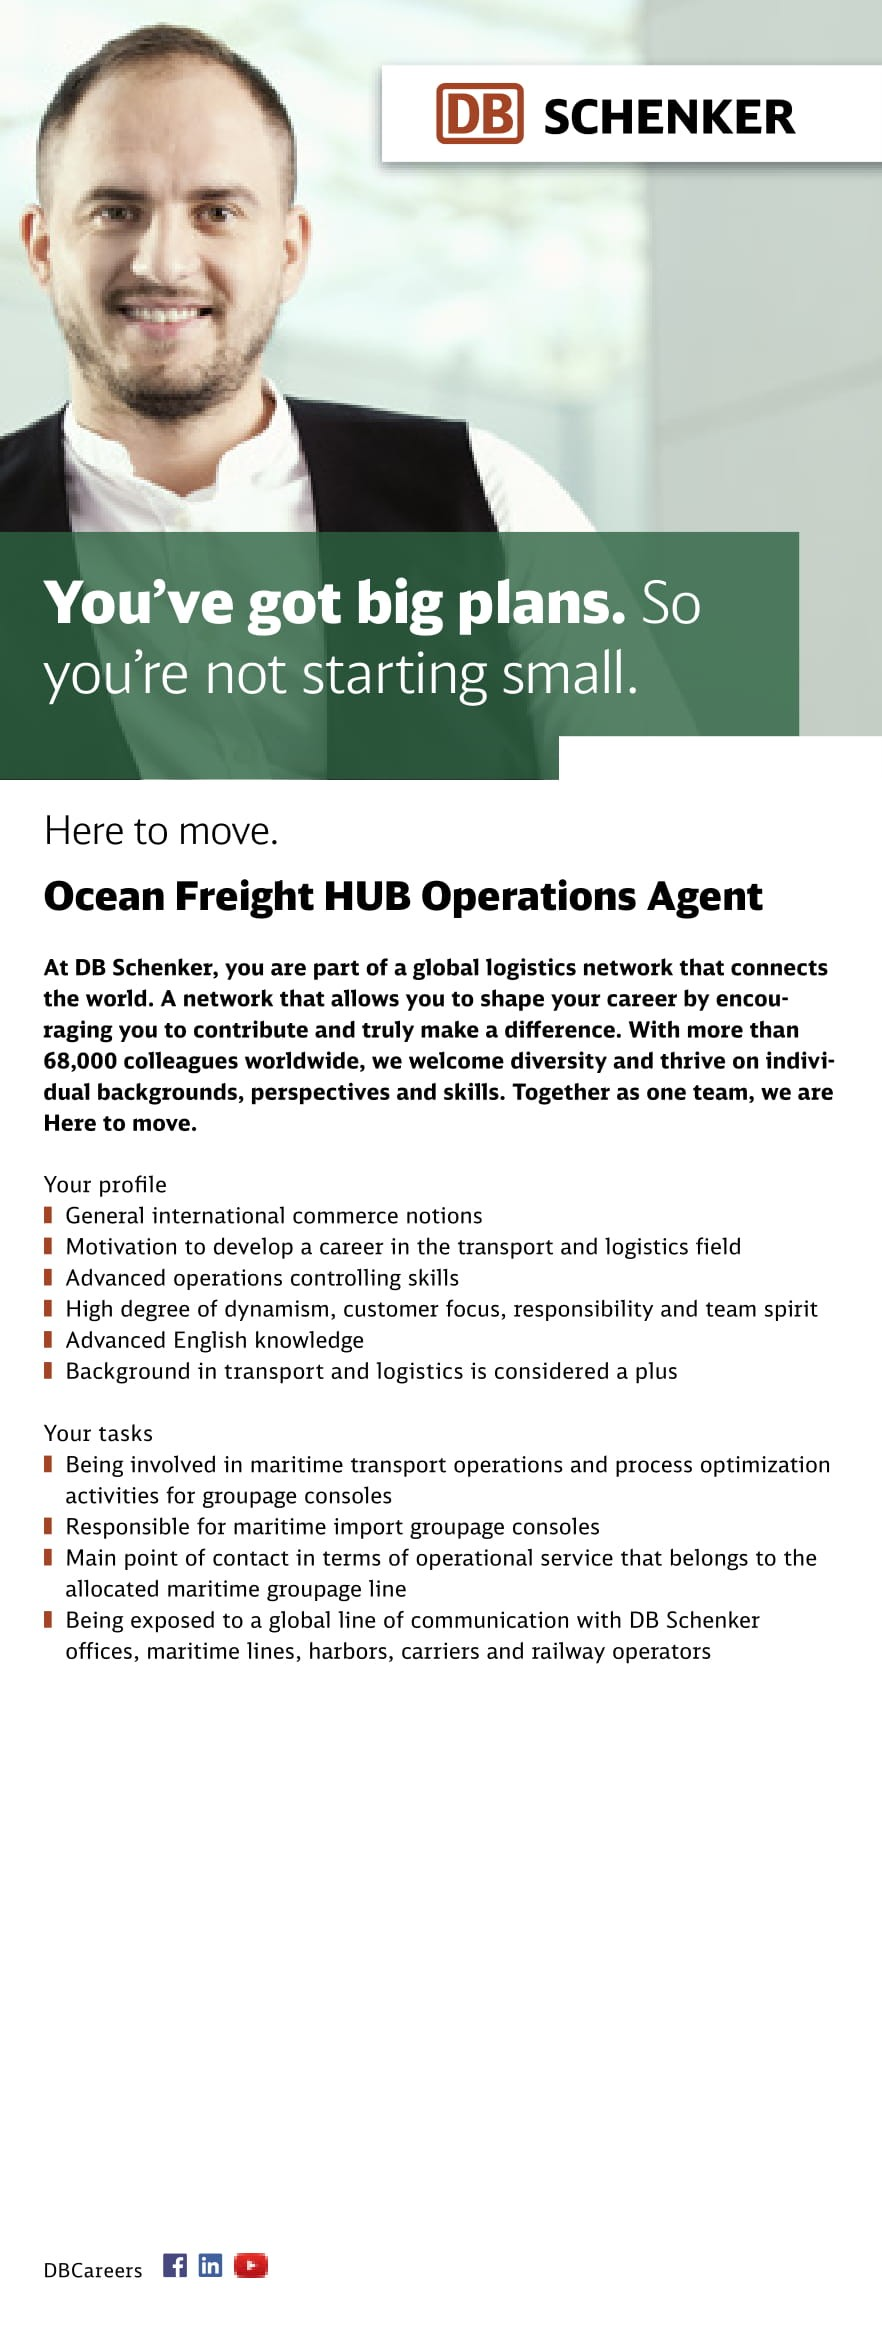 Ocean Freight HUB Operations Agent